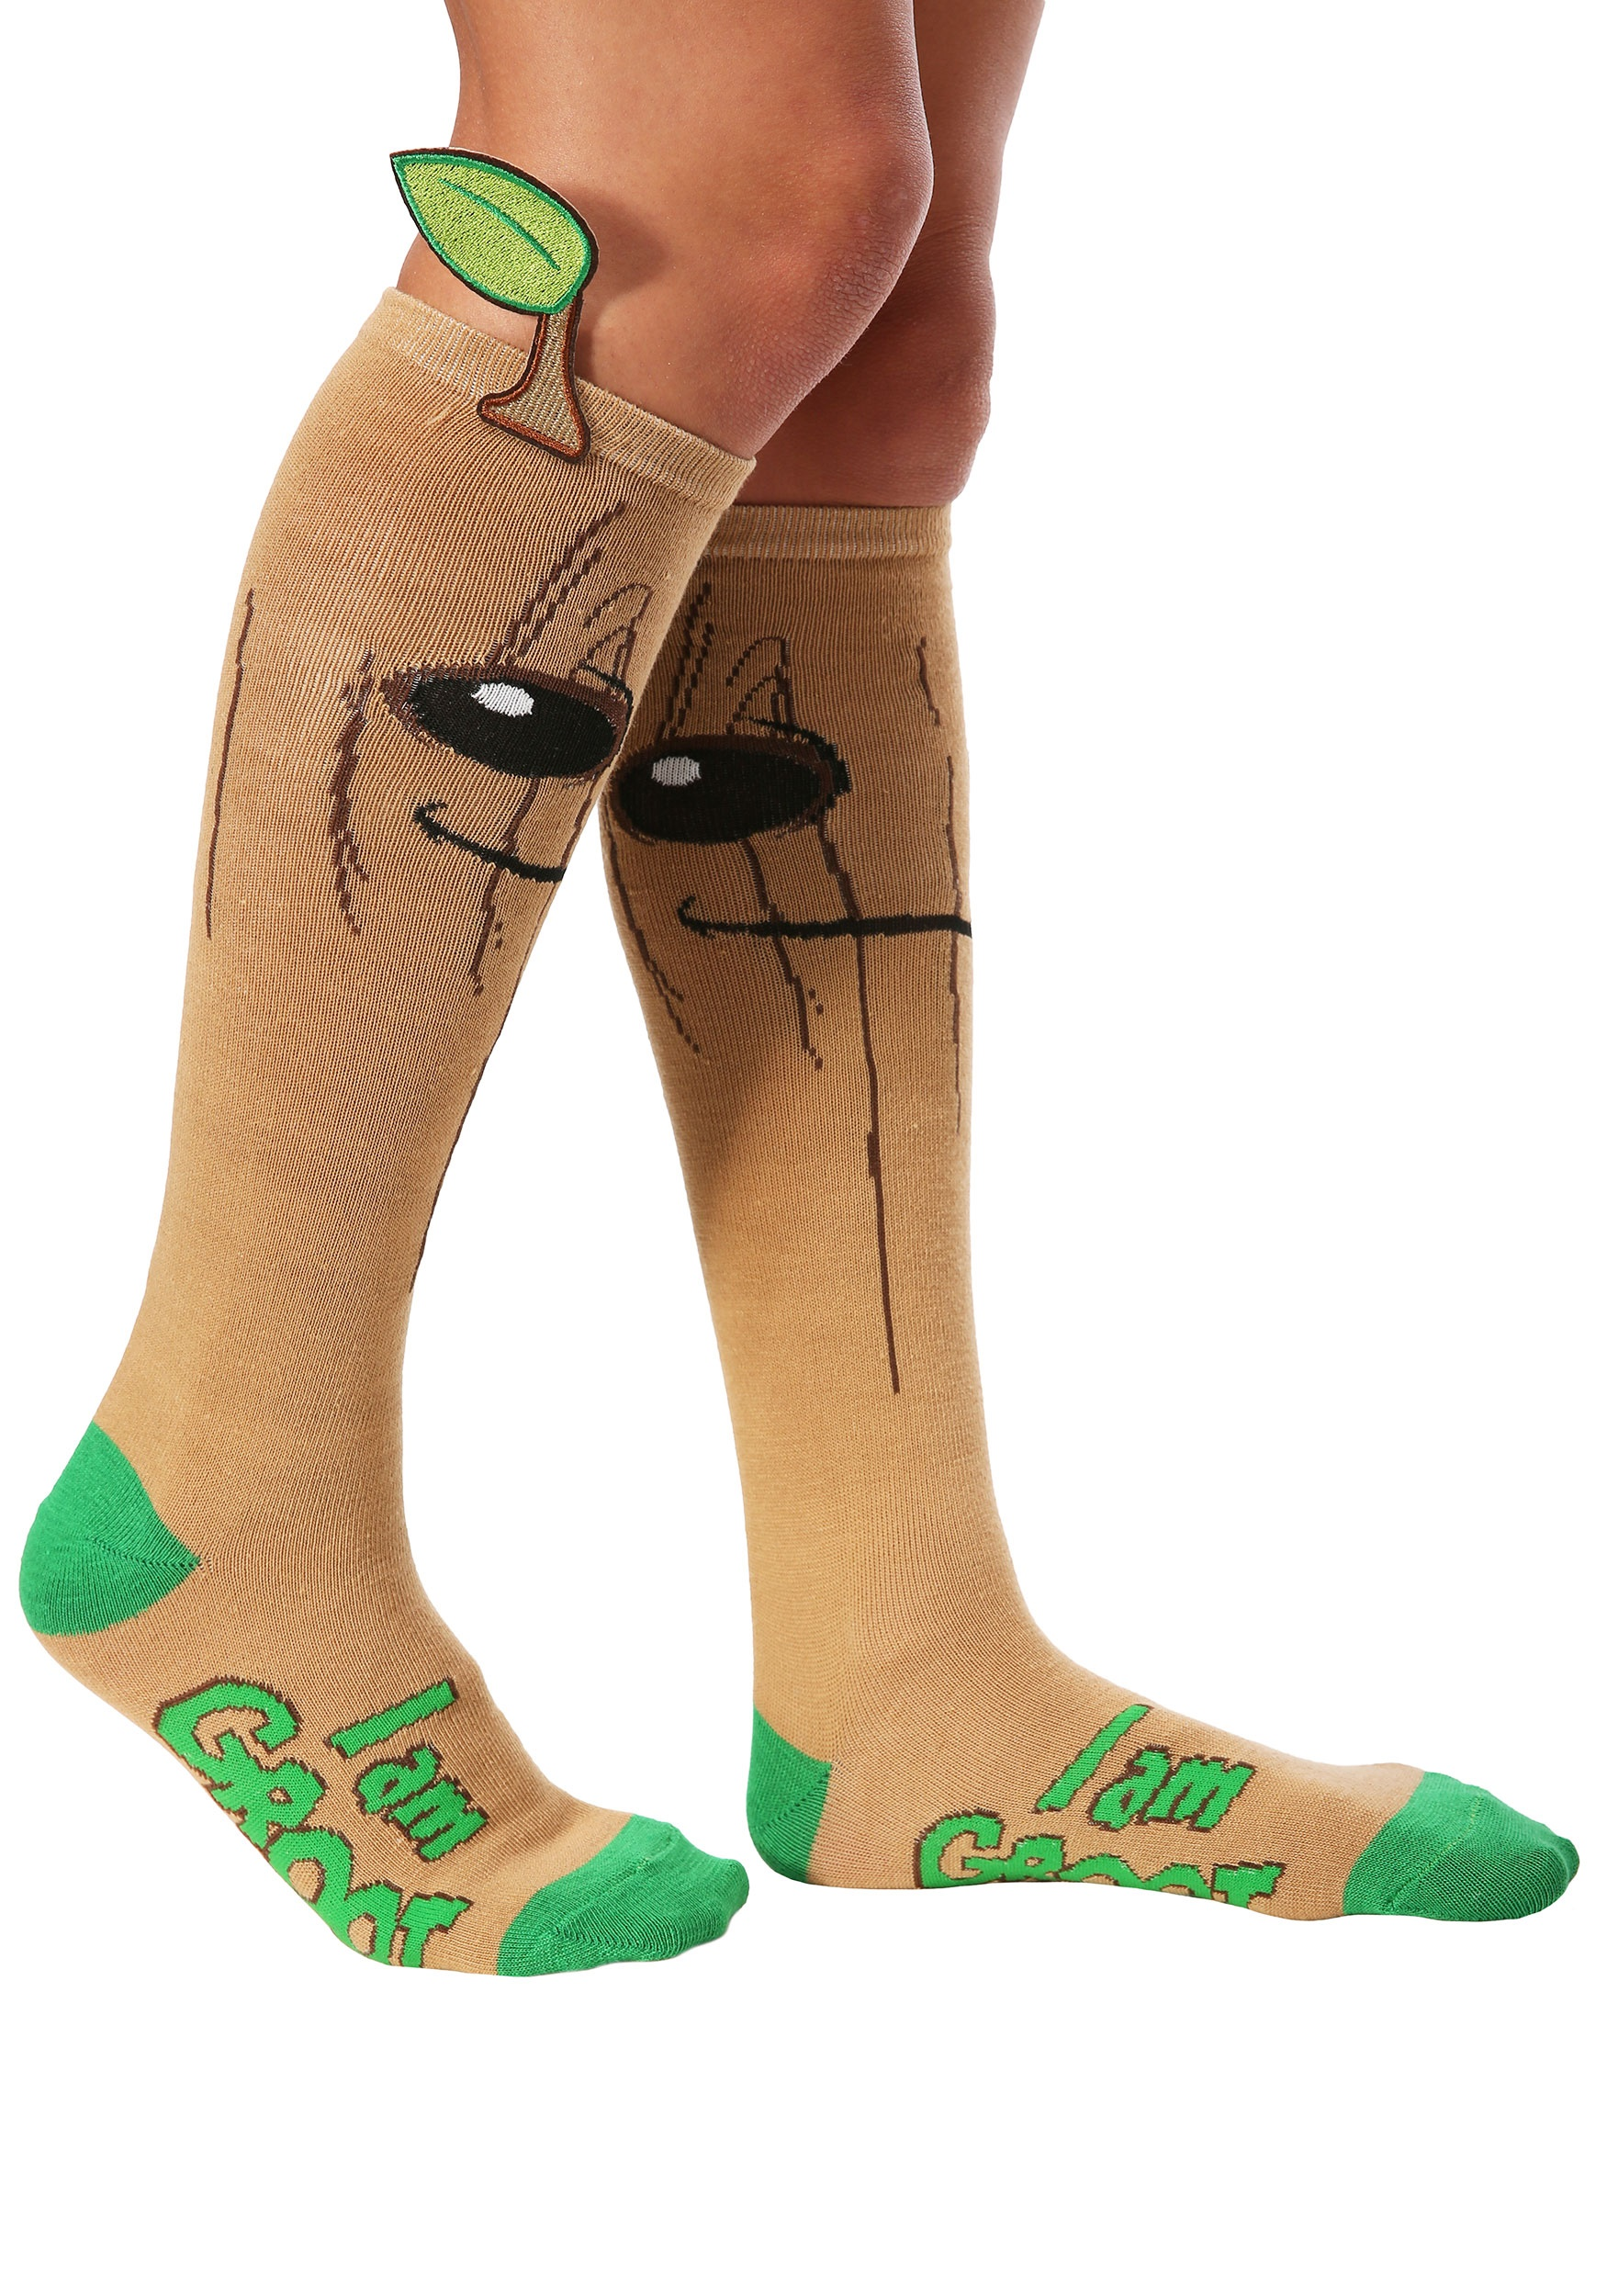 816ee1ba1 I Am Groot Guardians of the Galaxy Knee High Socks